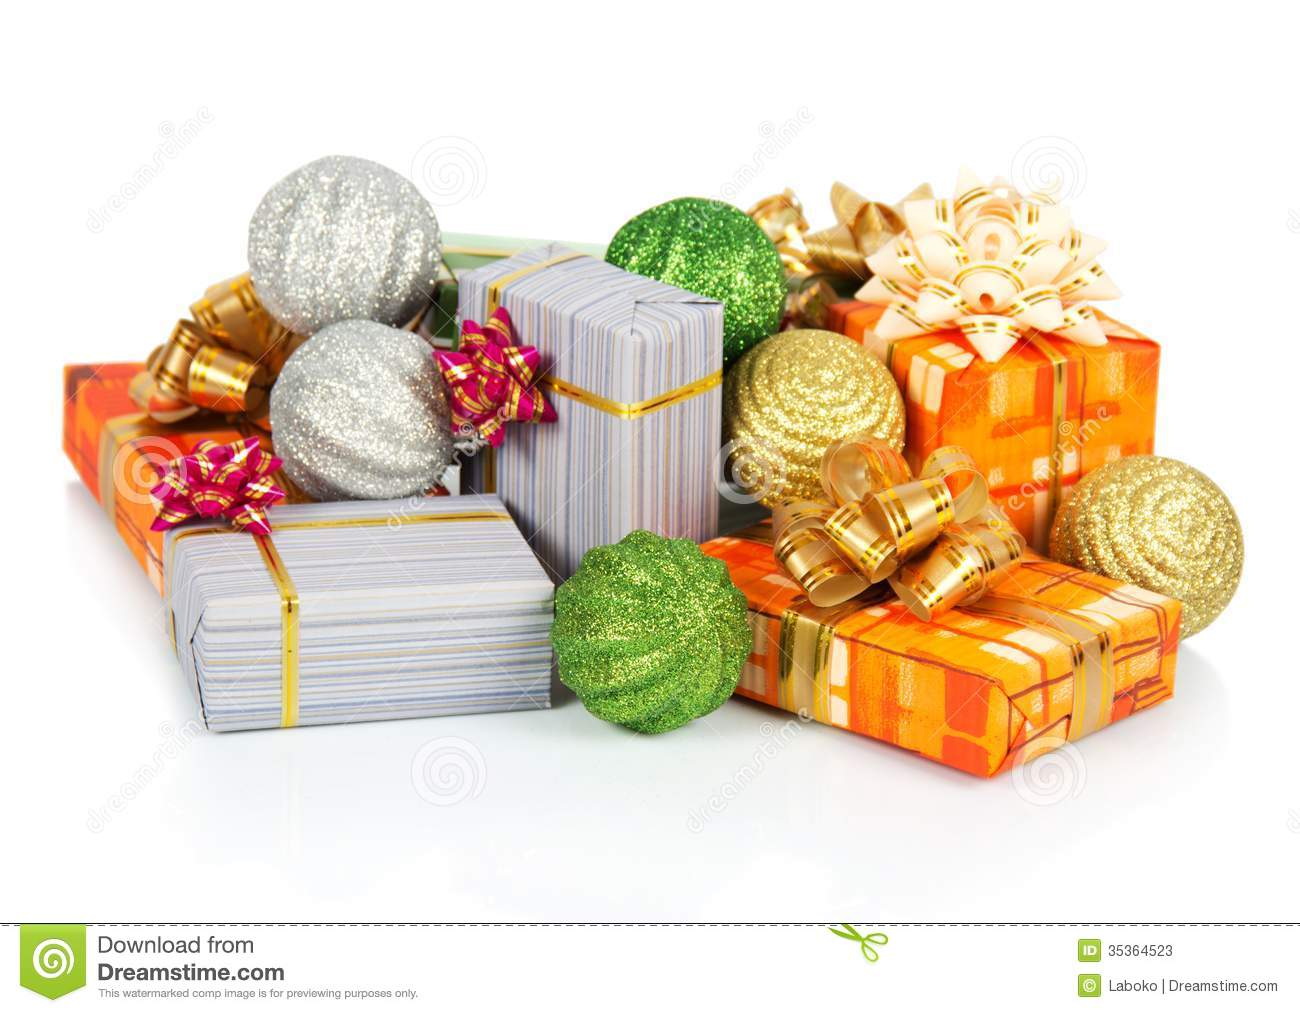 christmas decorations and gift boxes - Christmas Gift Box Decorations